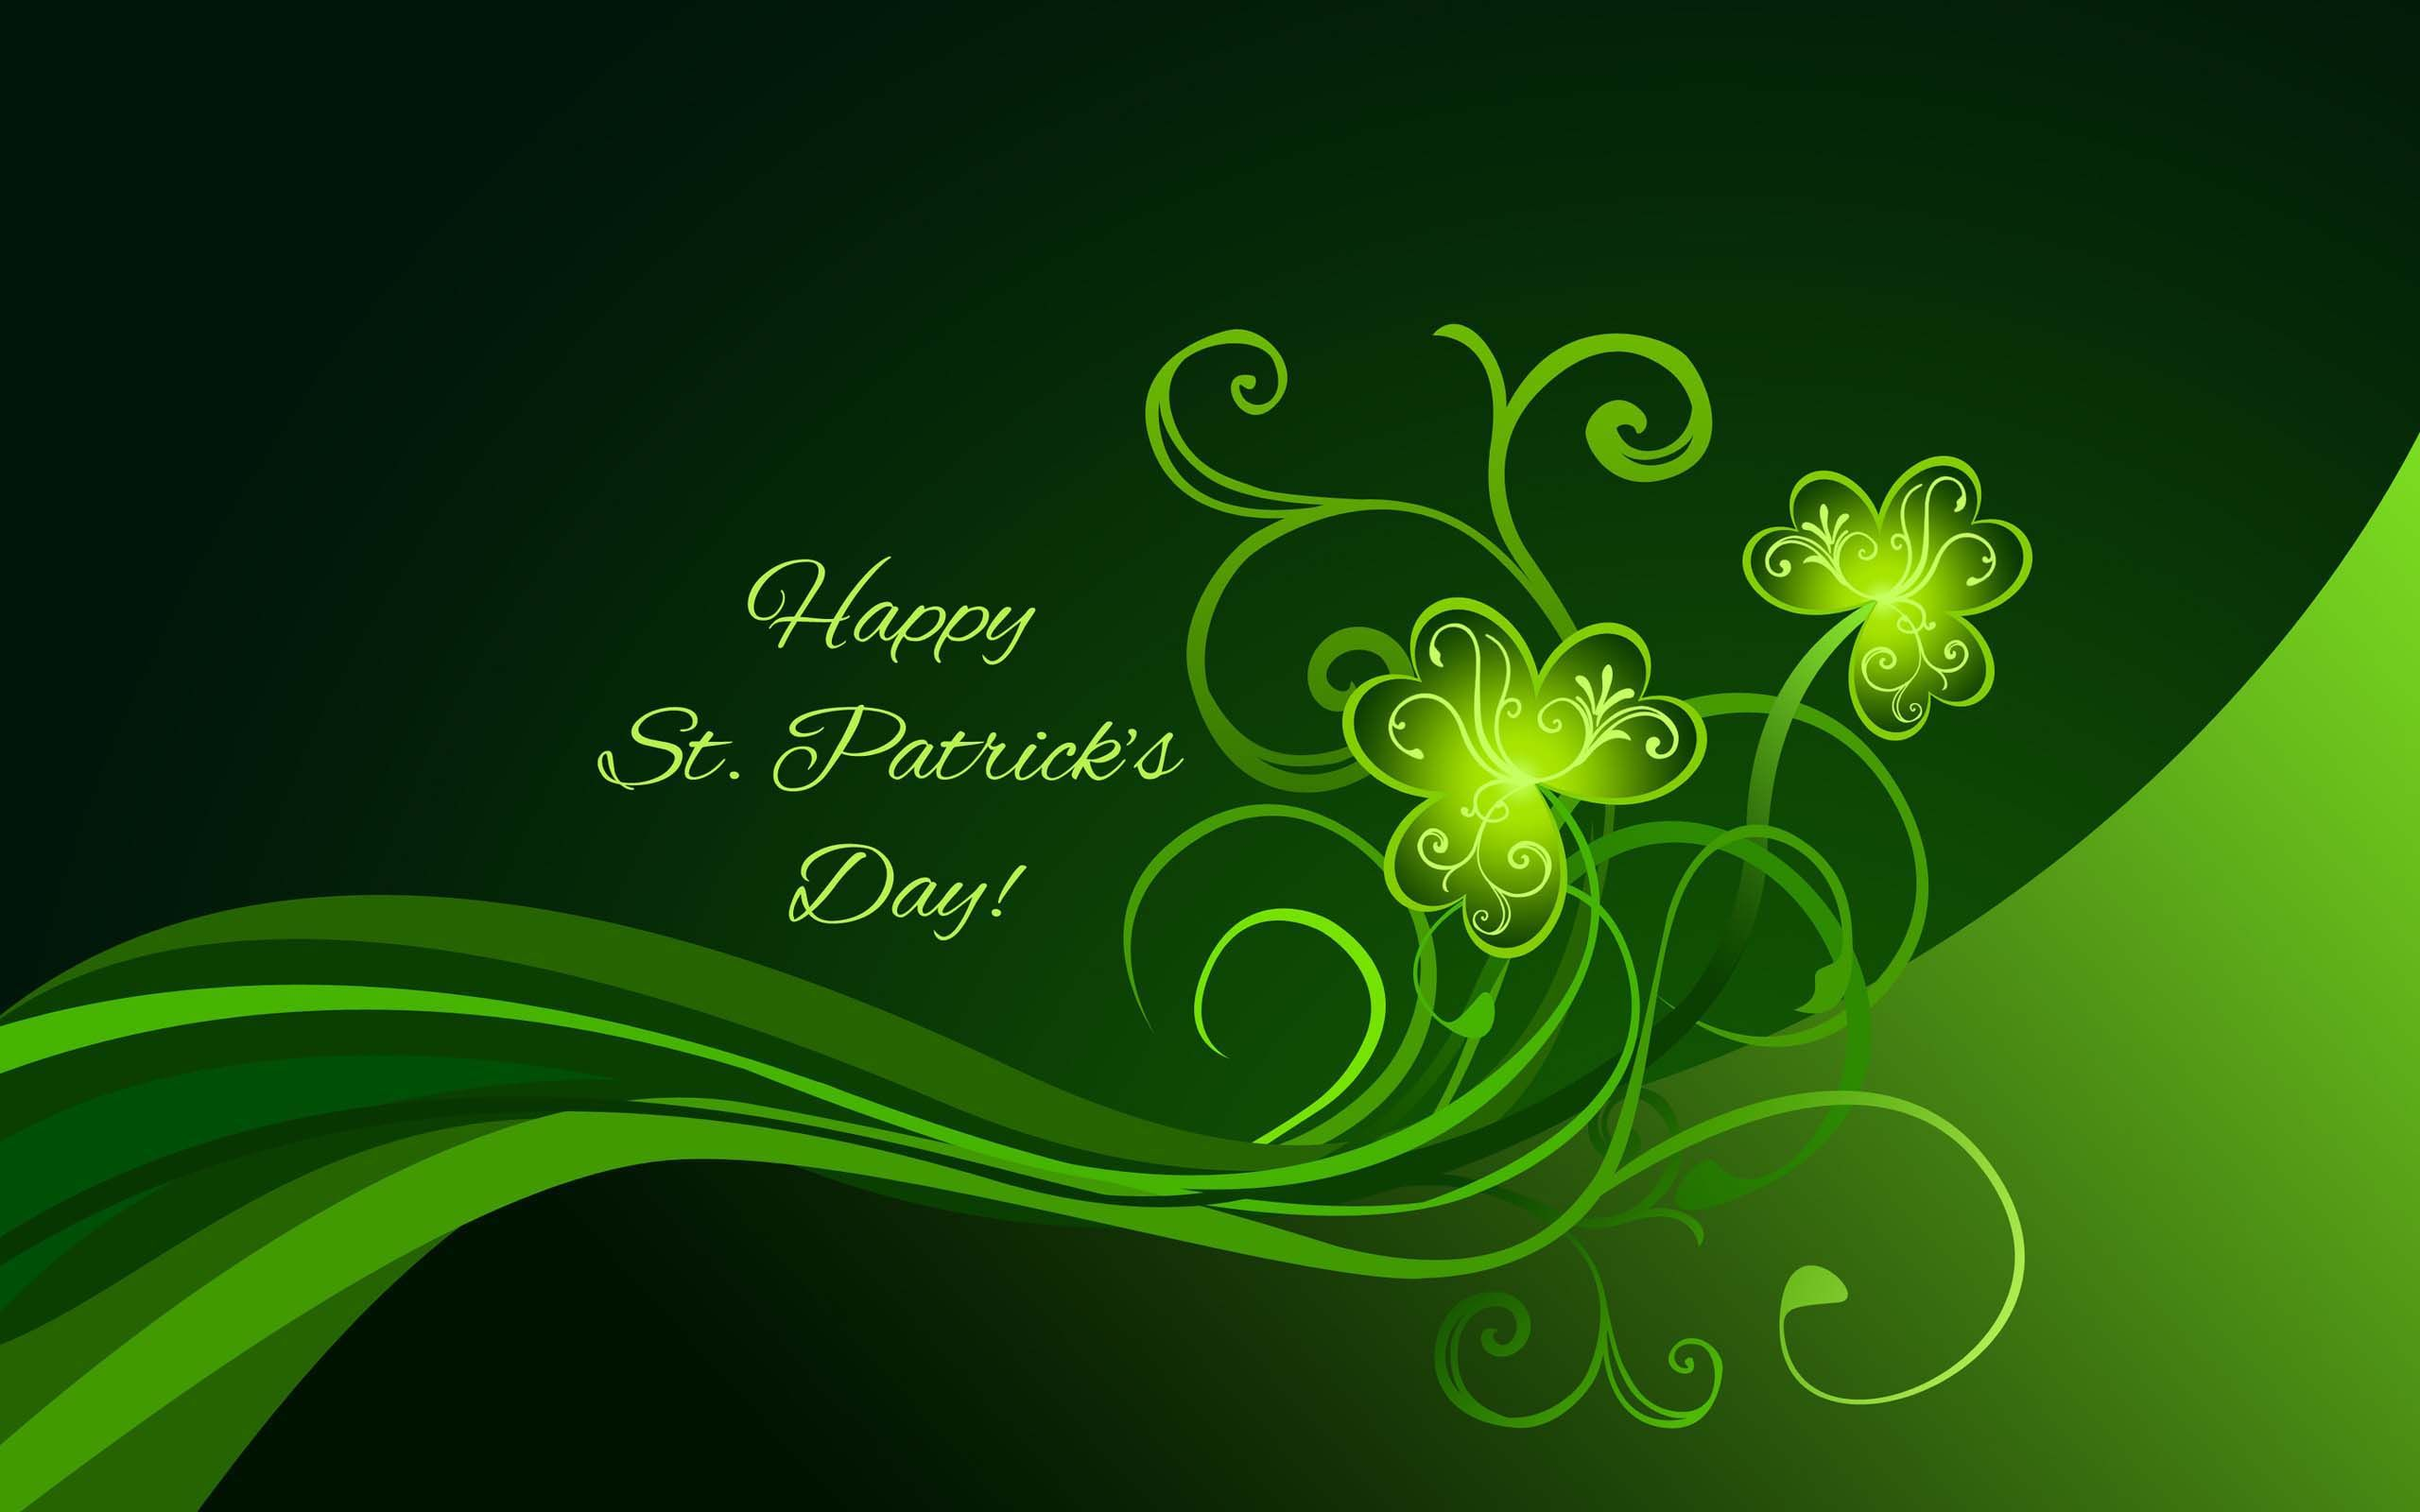 ST Patrick's Day Pictures Book For Desktop